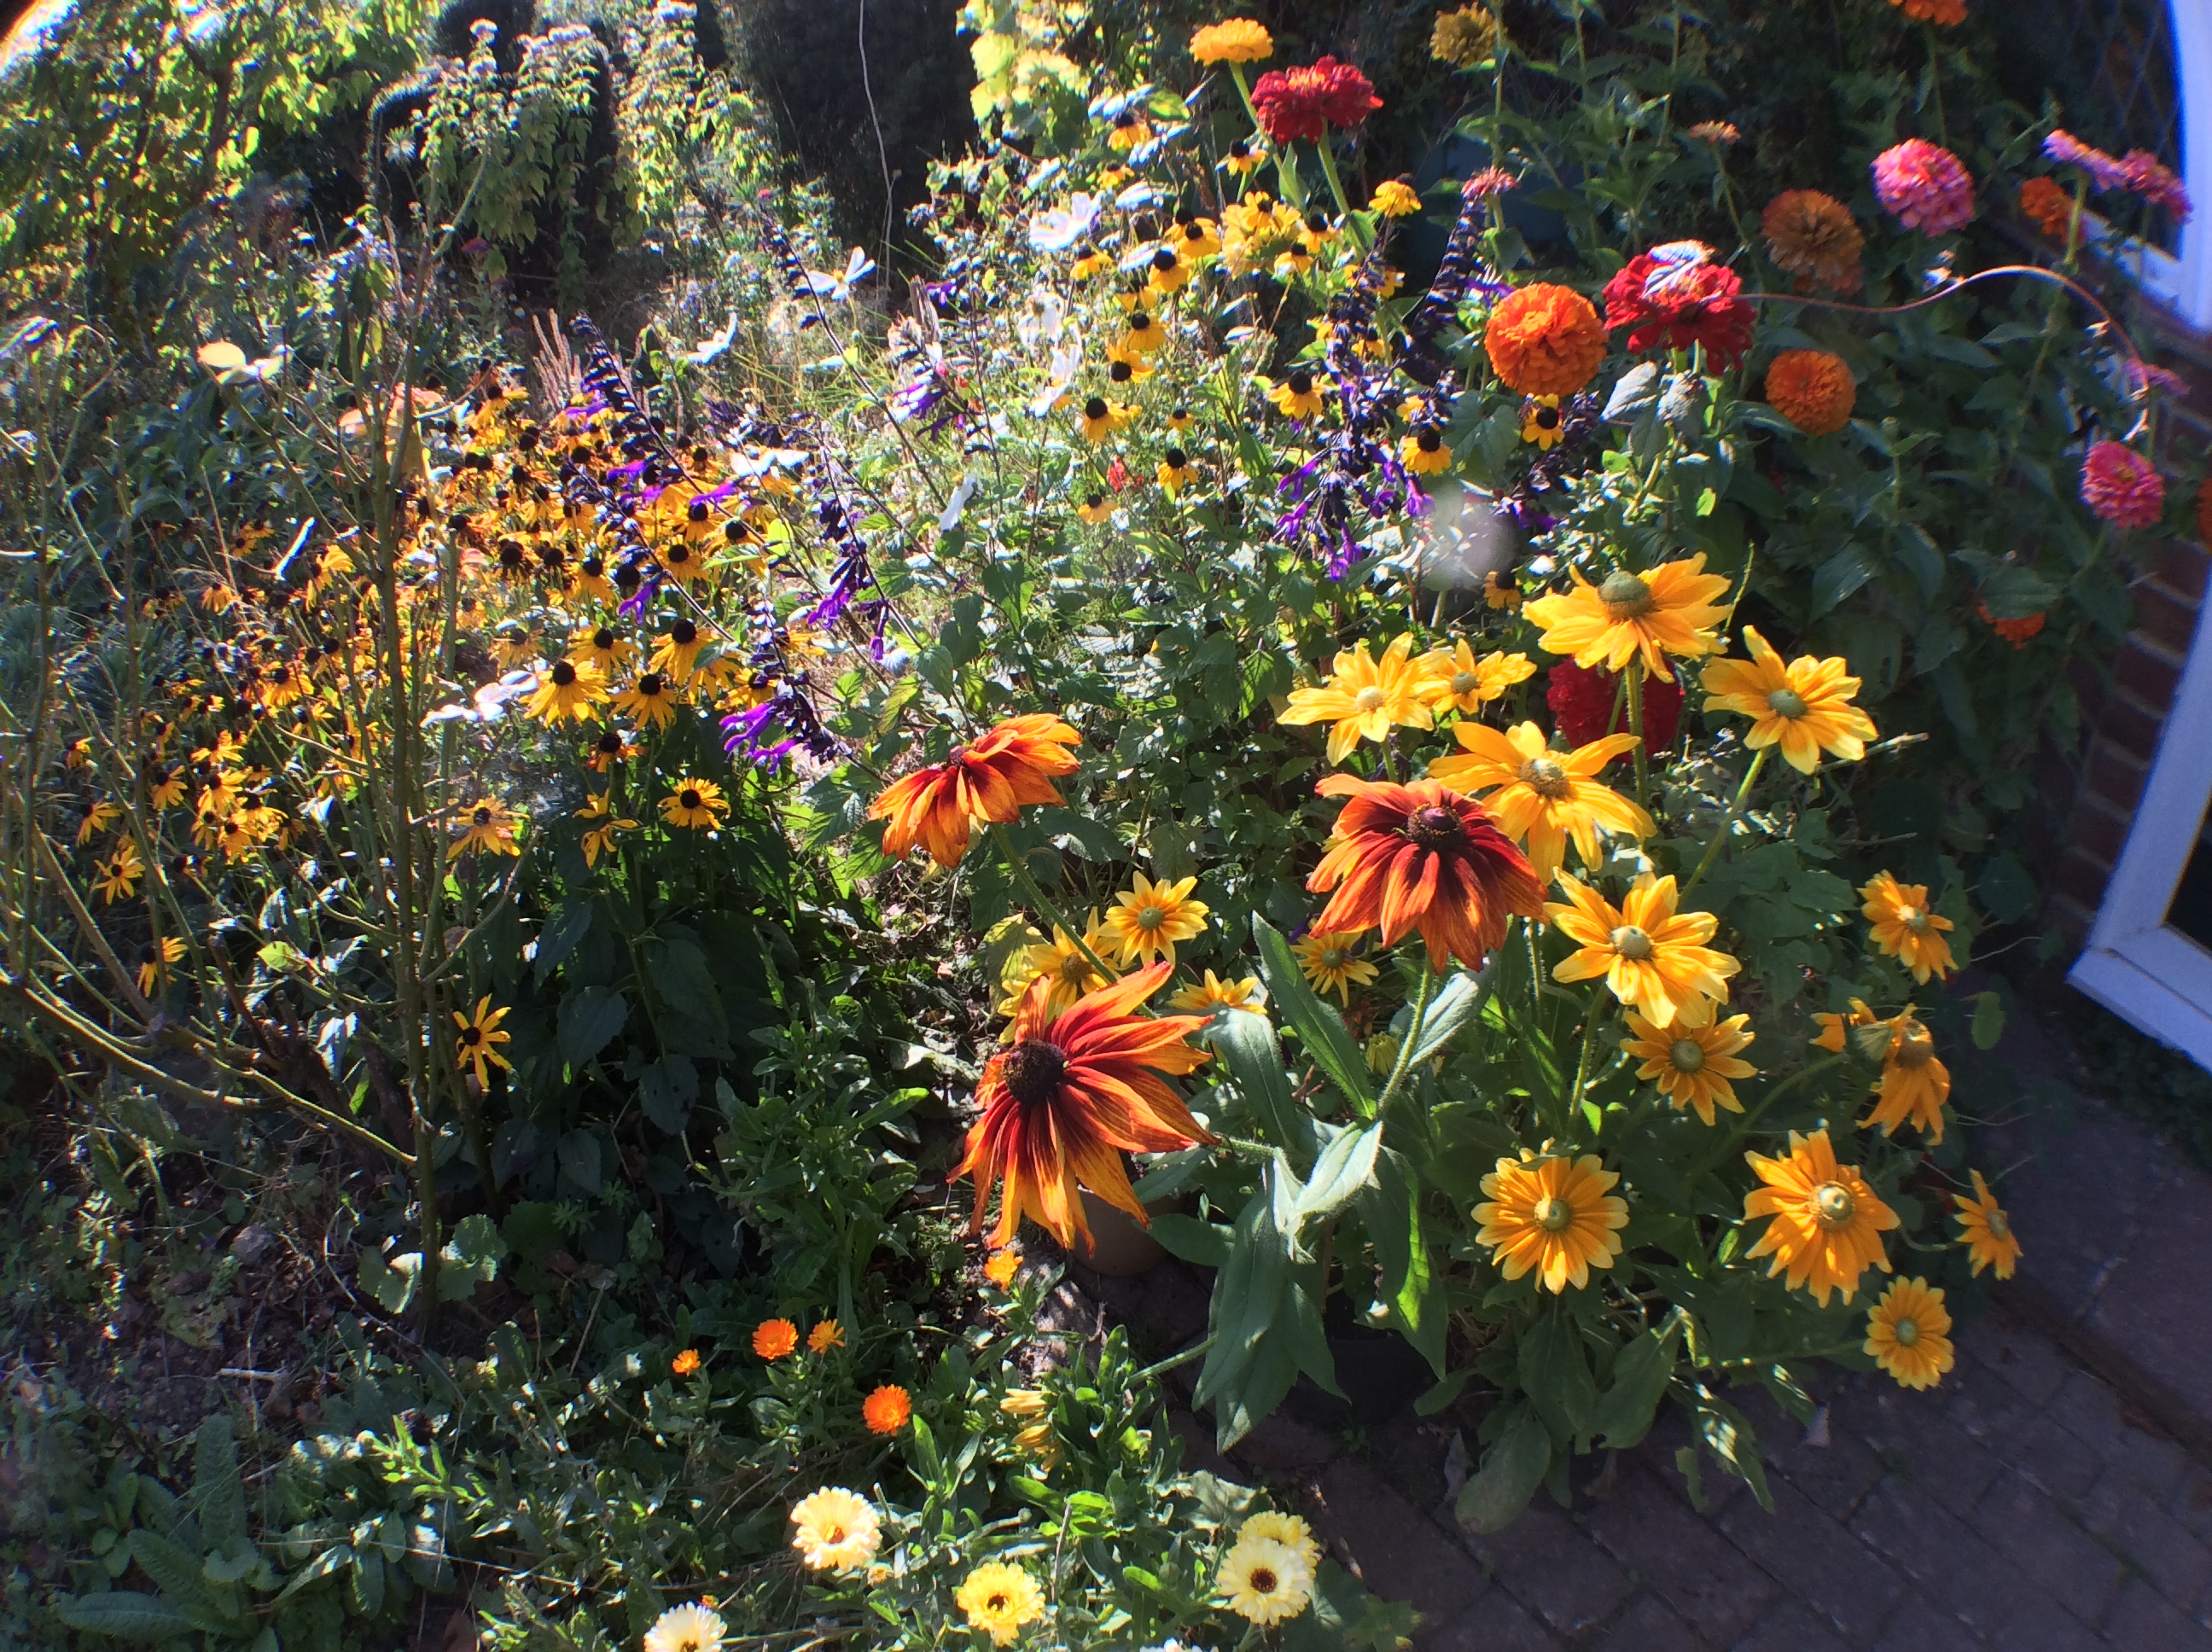 Cheerful mix of annual flowers in sunshine